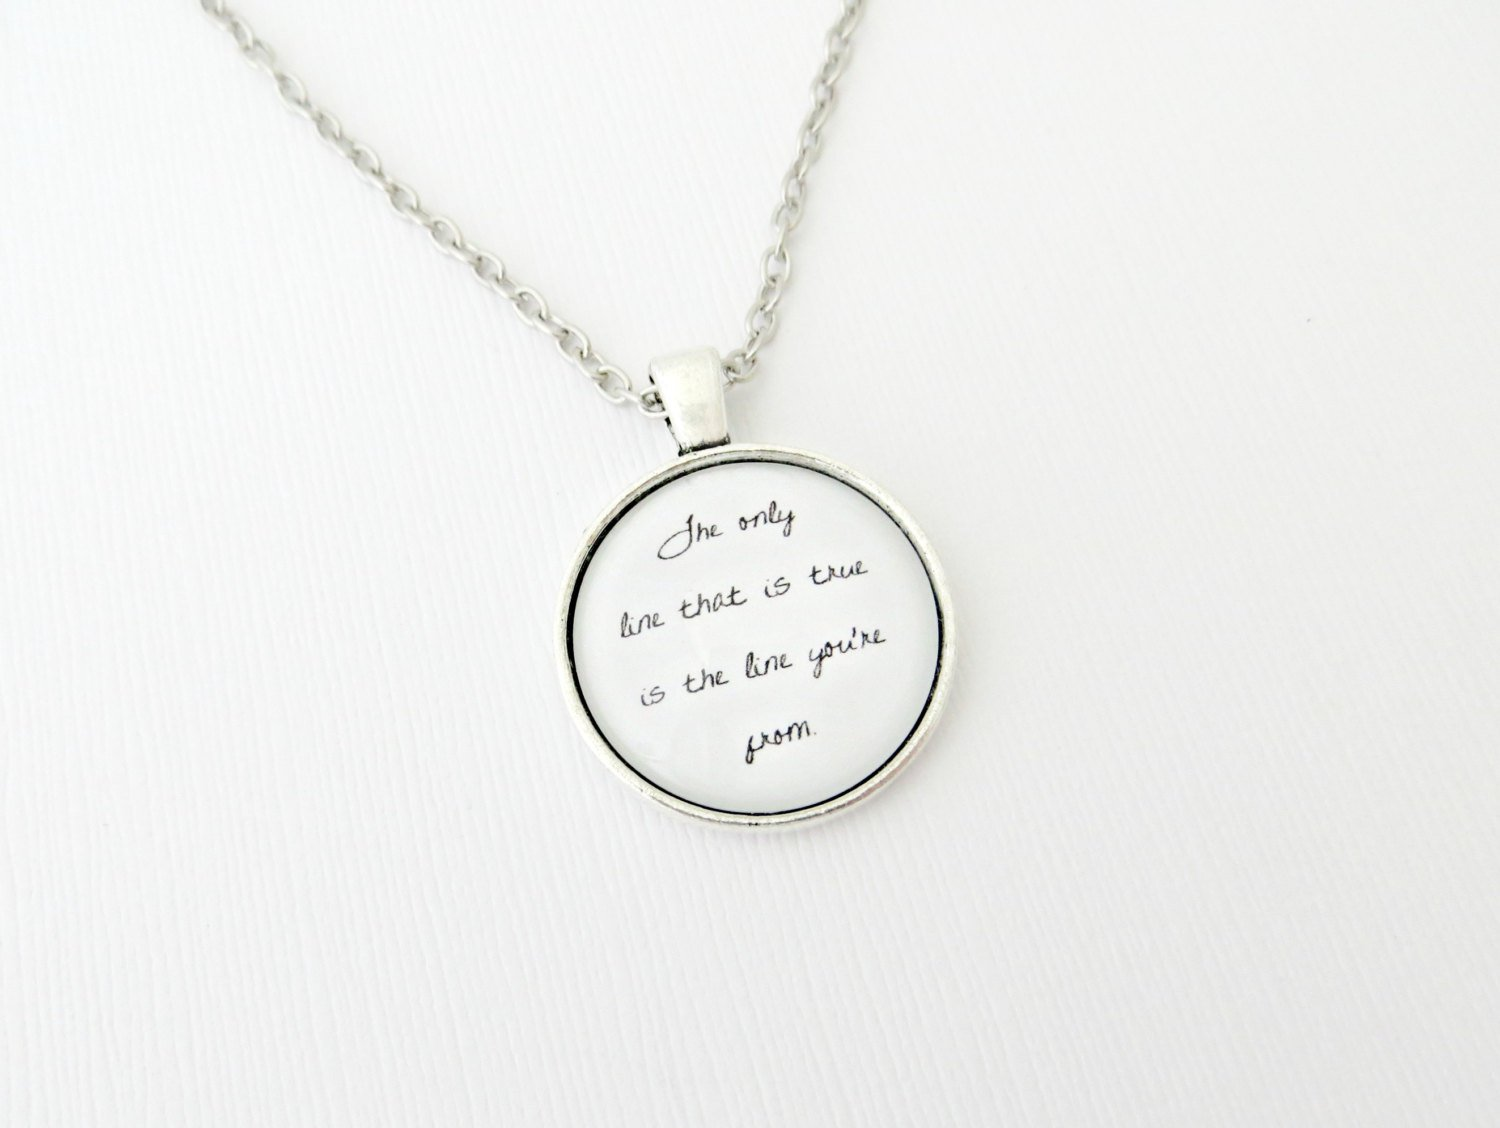 Blind Pilot One Red Thread Inspired Lyrical Quote Pendant Necklace (Silver 18 inches)